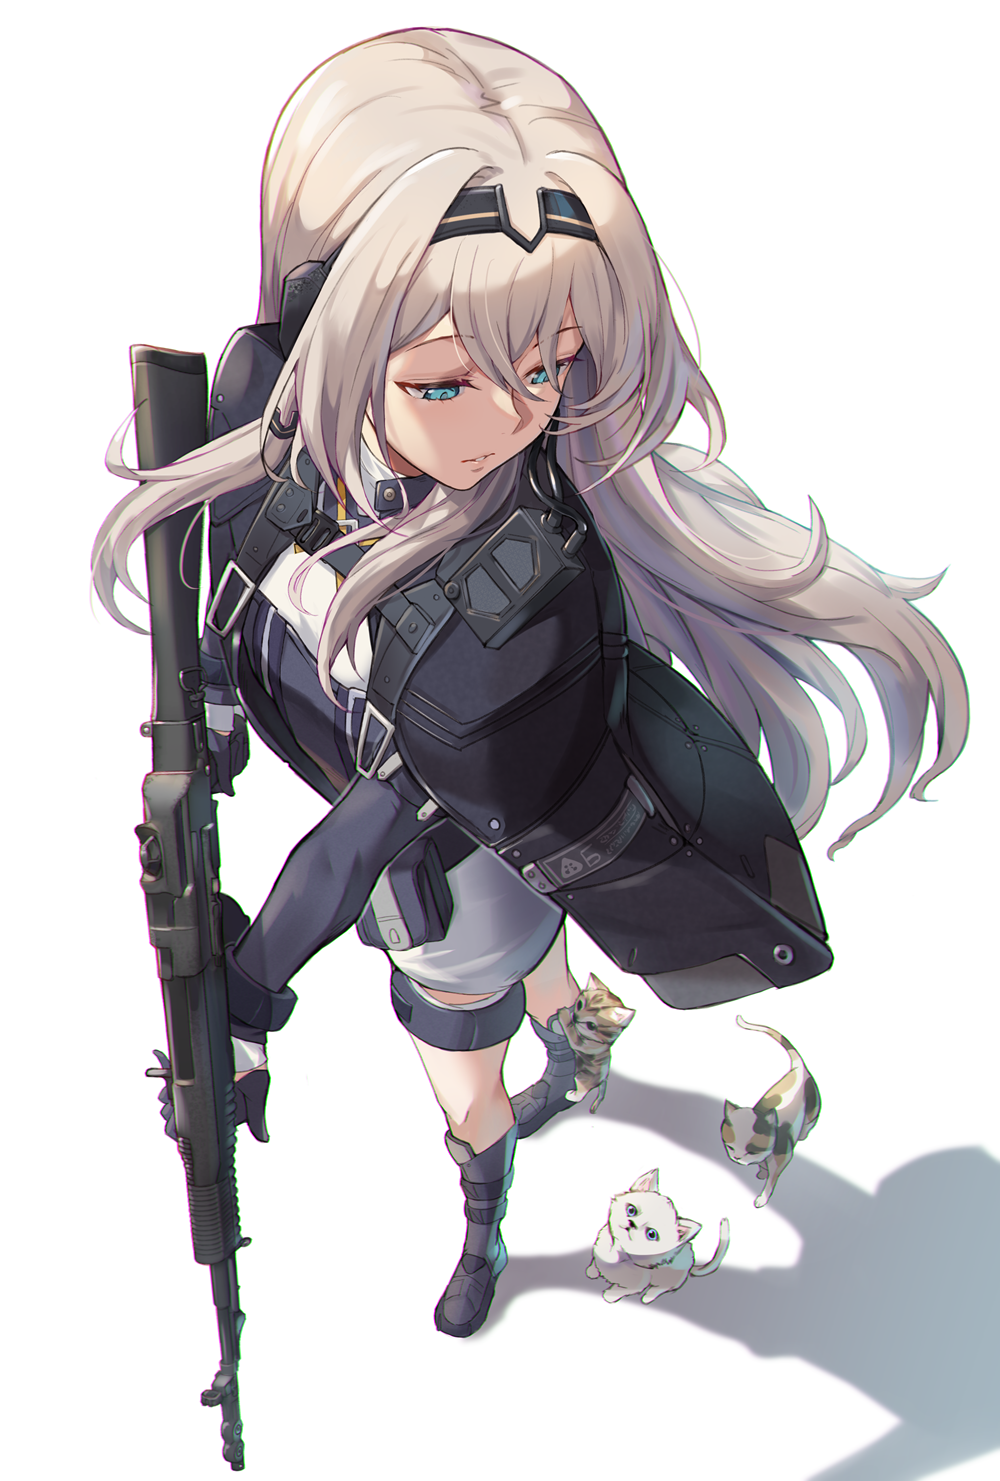 1girl an-94 an-94_(girls_frontline) animal assault_rifle black_gloves blue_eyes breasts cat girls_frontline gloves gun hairband highres holding holding_gun holding_weapon jacket long_hair niac parted_lips platinum_blonde_hair rifle solo weapon